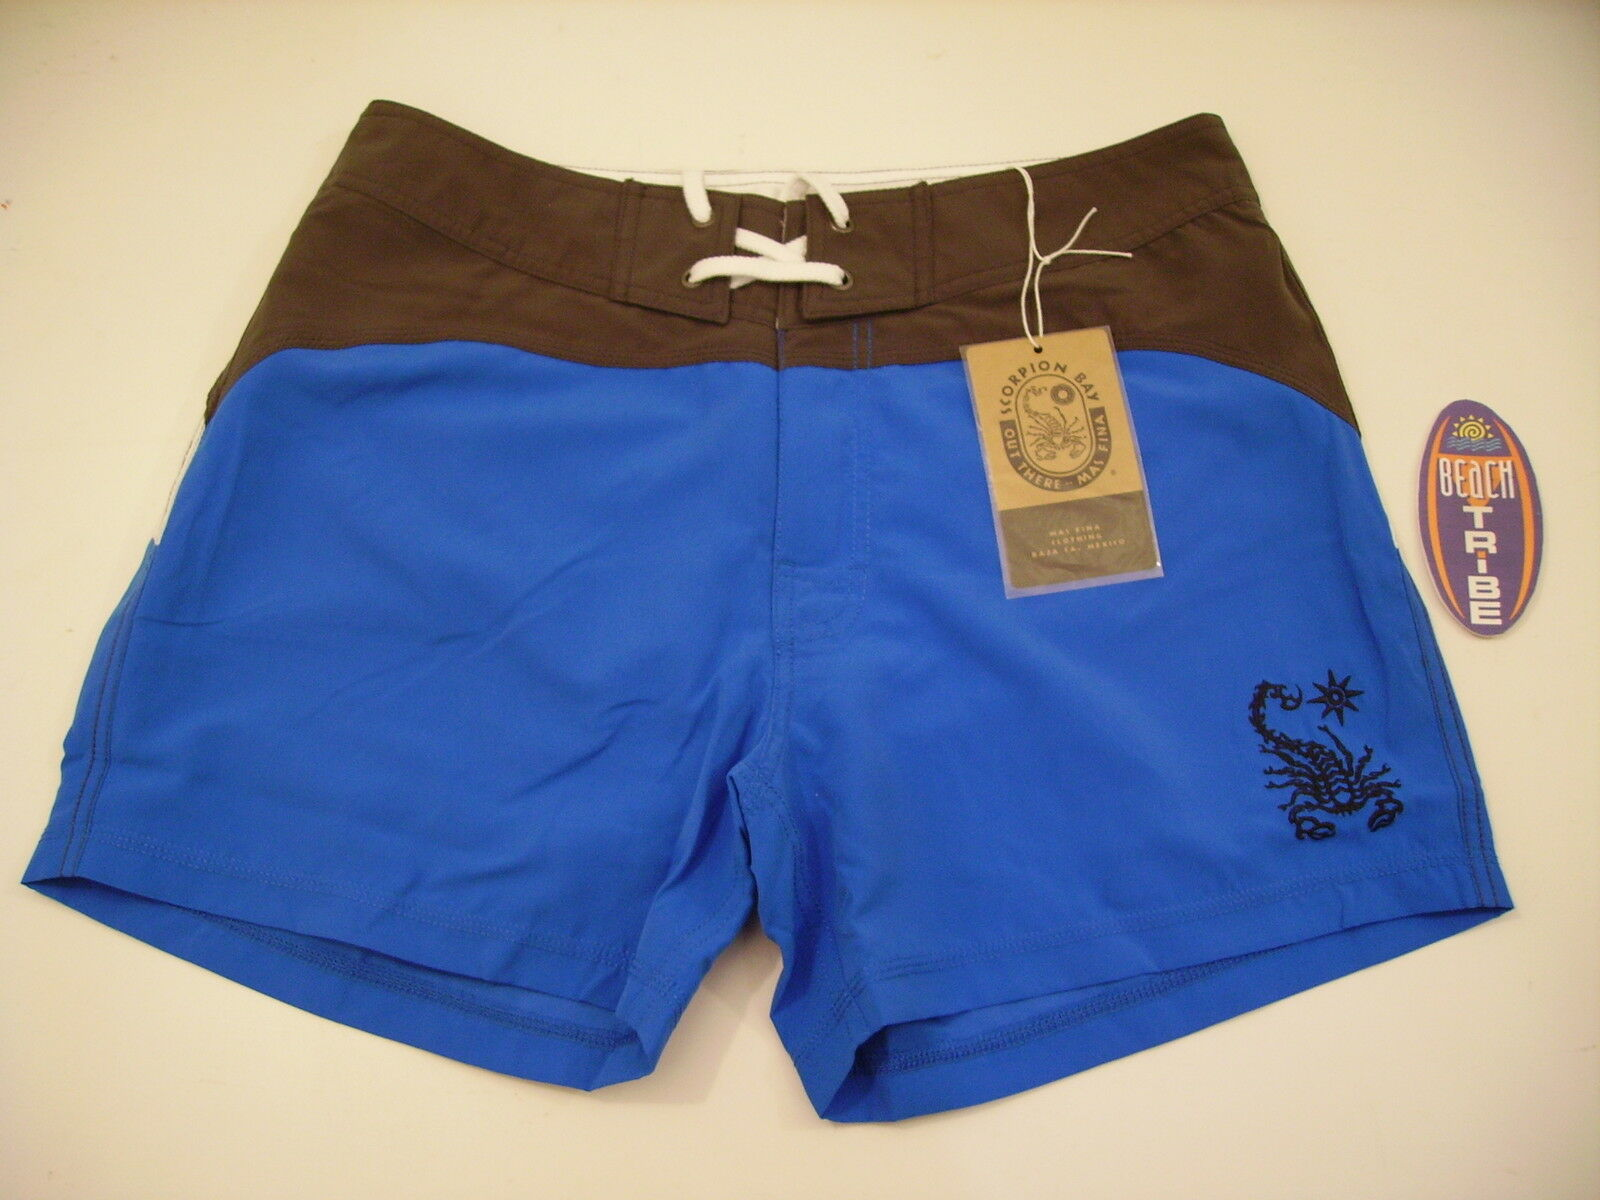 SCORPION BAY BOARDSHORT SHORTS SEA COSTUME MBS2701 ROYAL blueE GREY 36